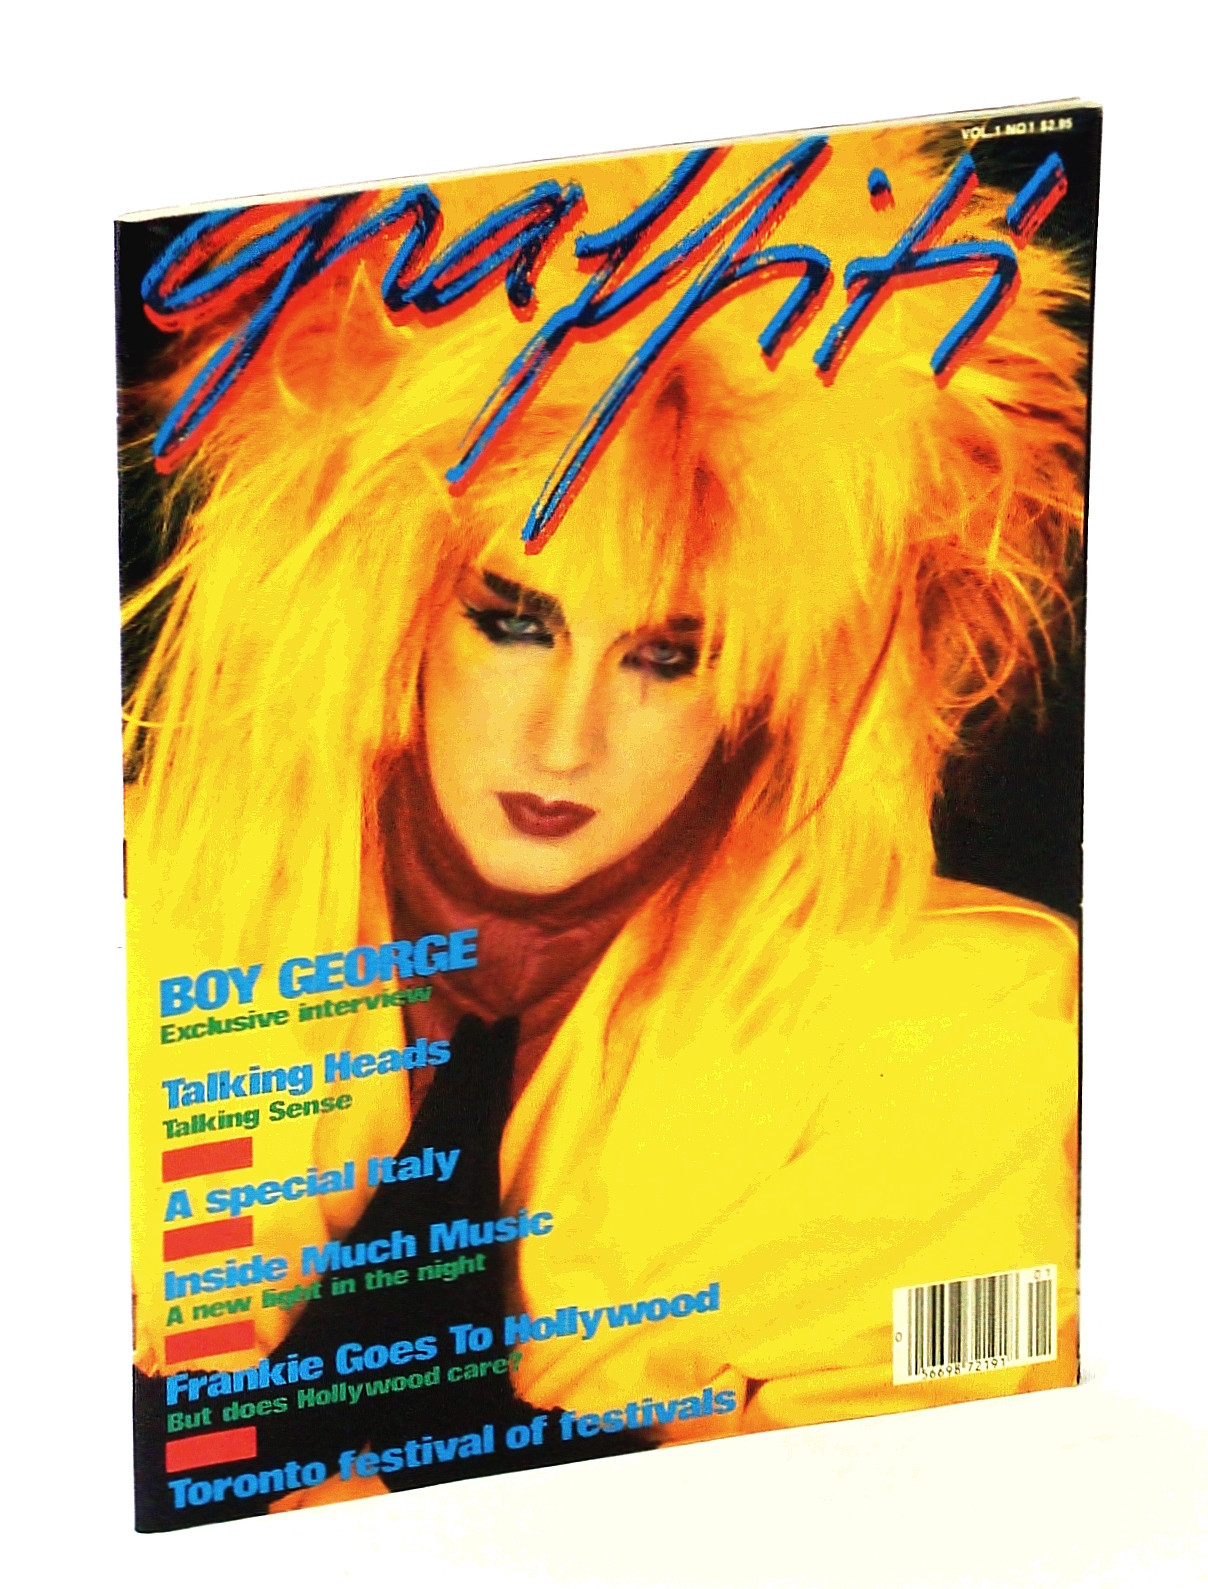 Image for Graffiti [Magazine] Vol 1 No. 1, November 1984 - PREMIERE ISSUE